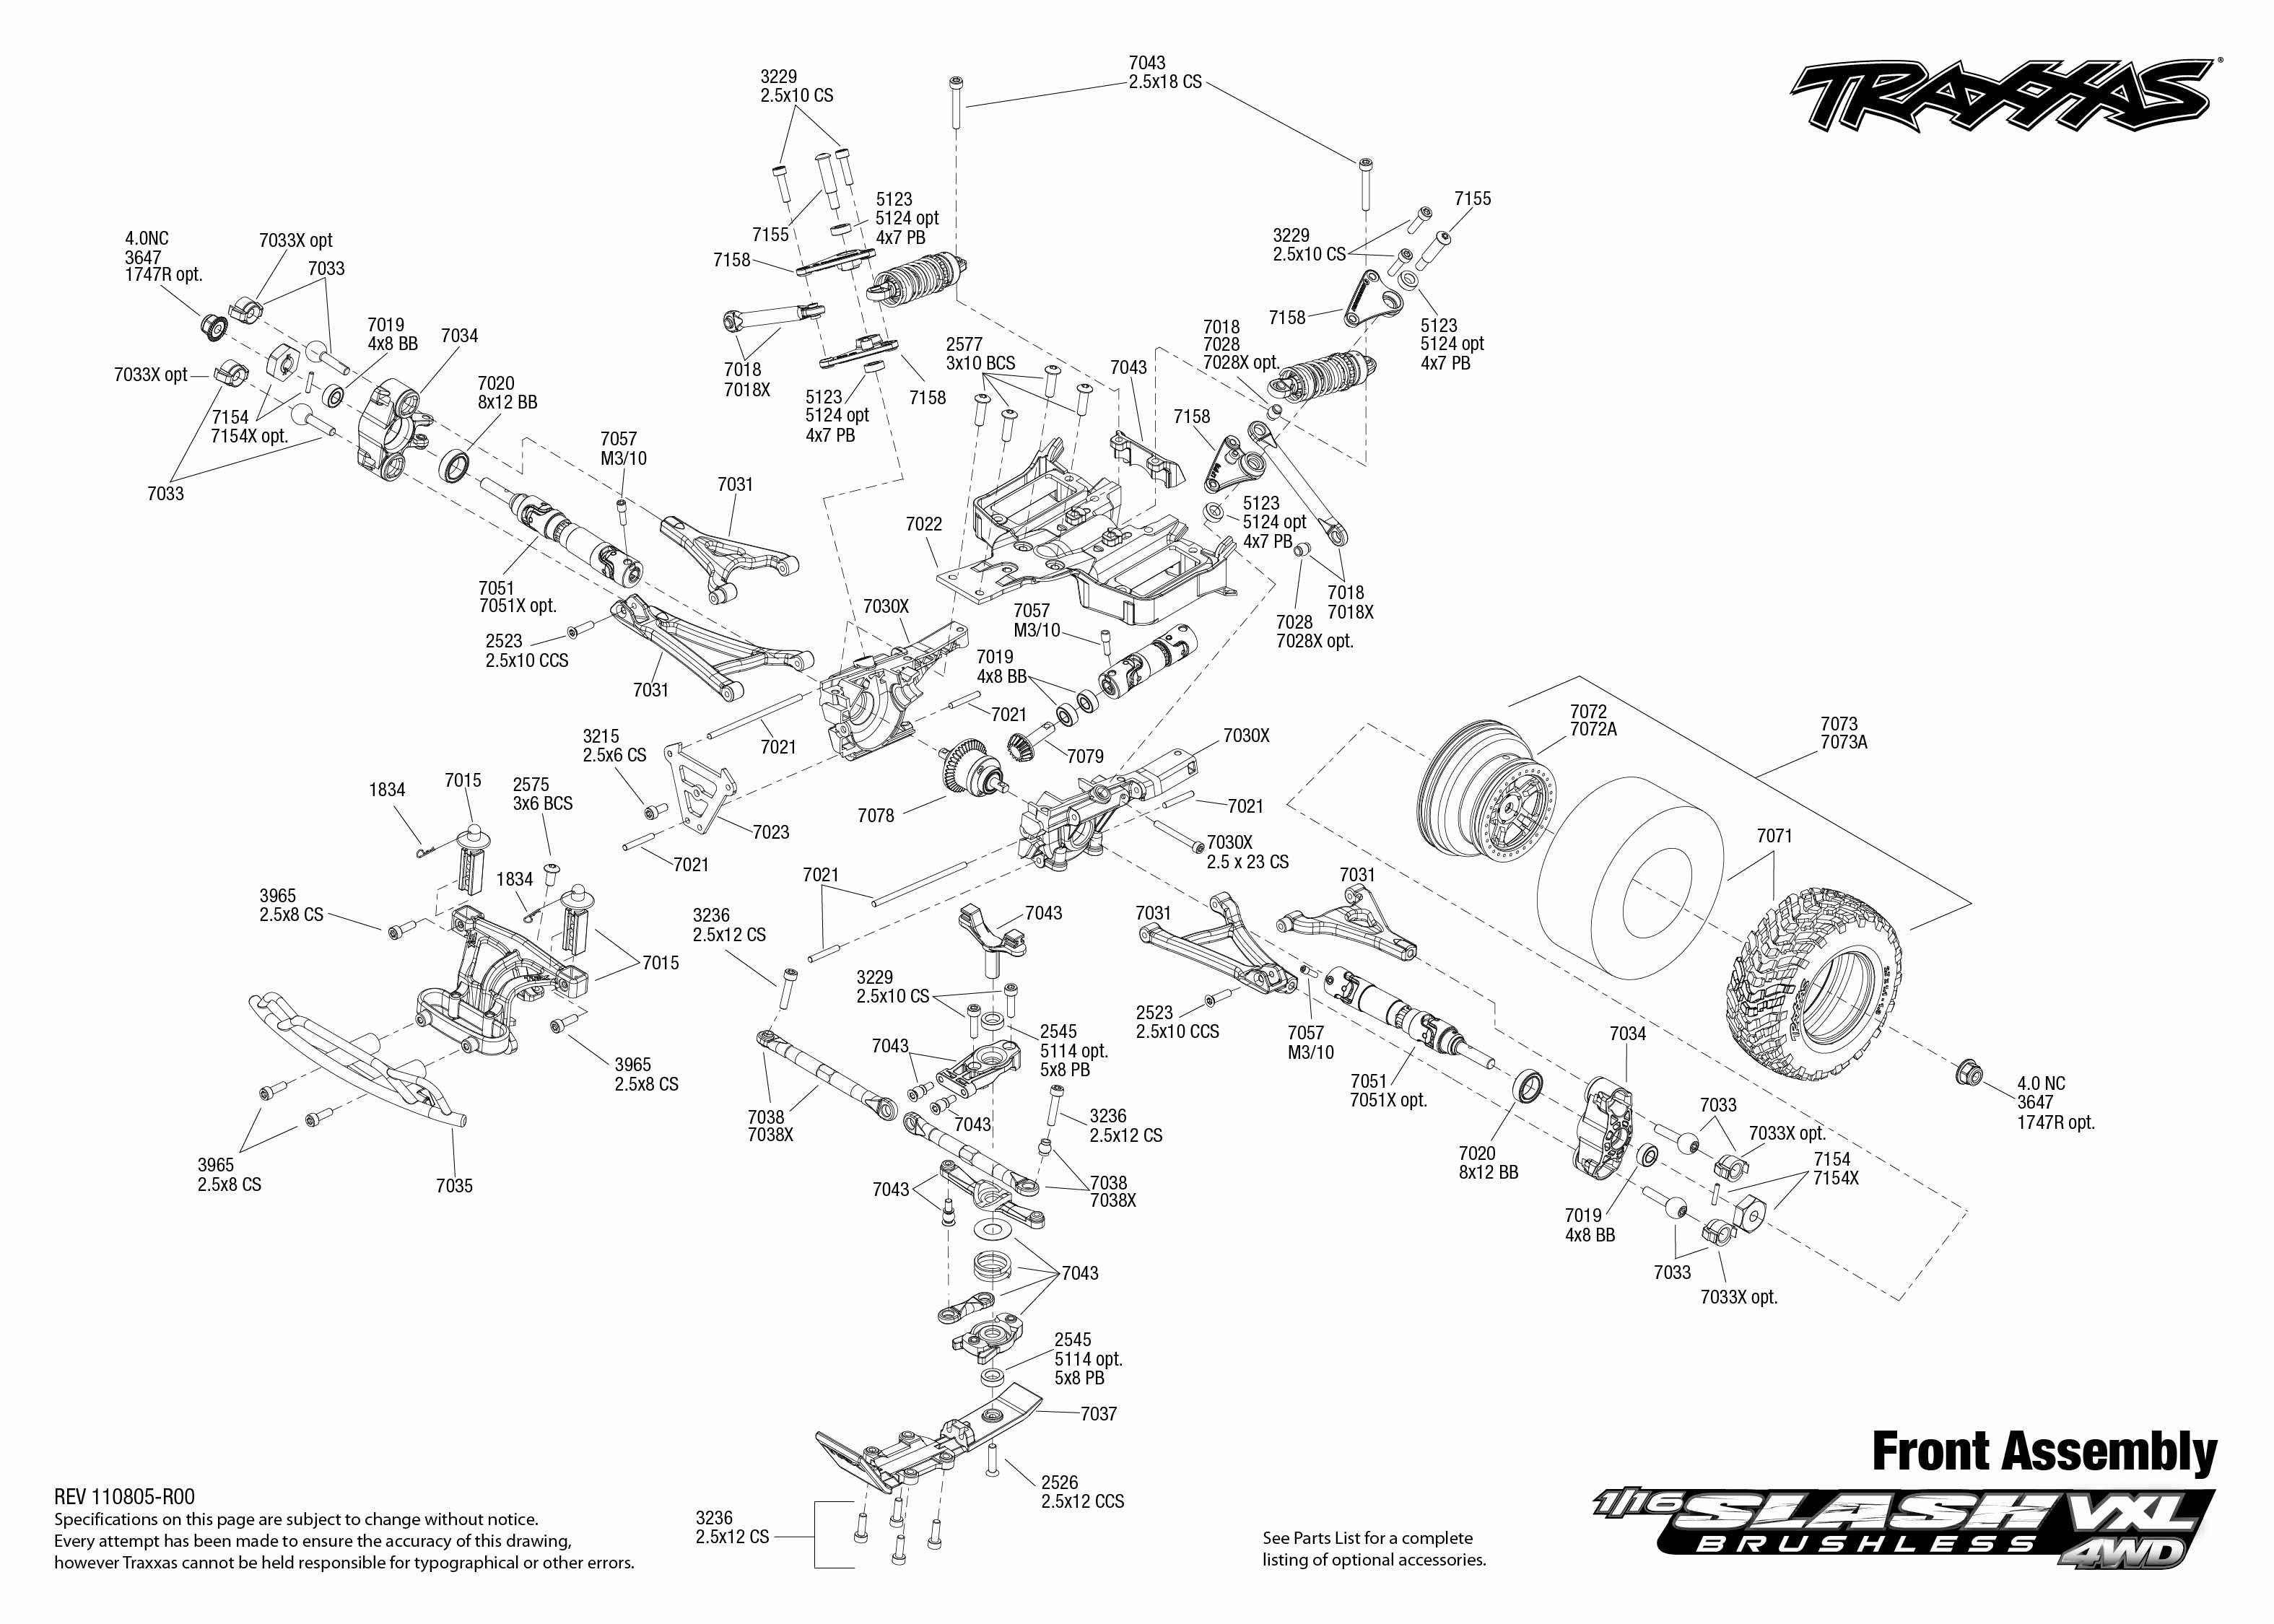 29 Traxxas Slash 4x4 Parts Diagram